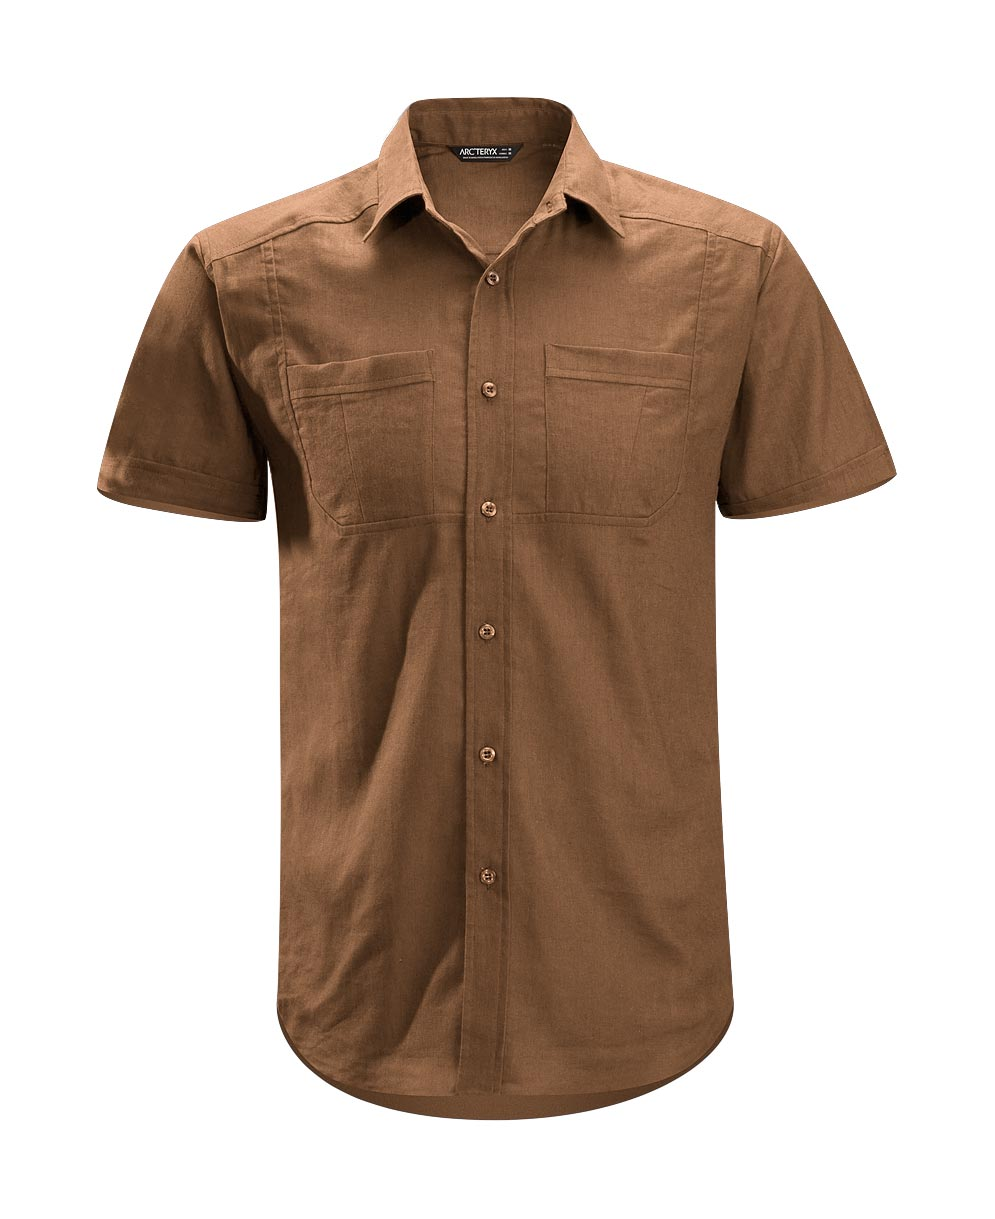 Arcteryx Nubian Brown Ravelin Shirt SS - New